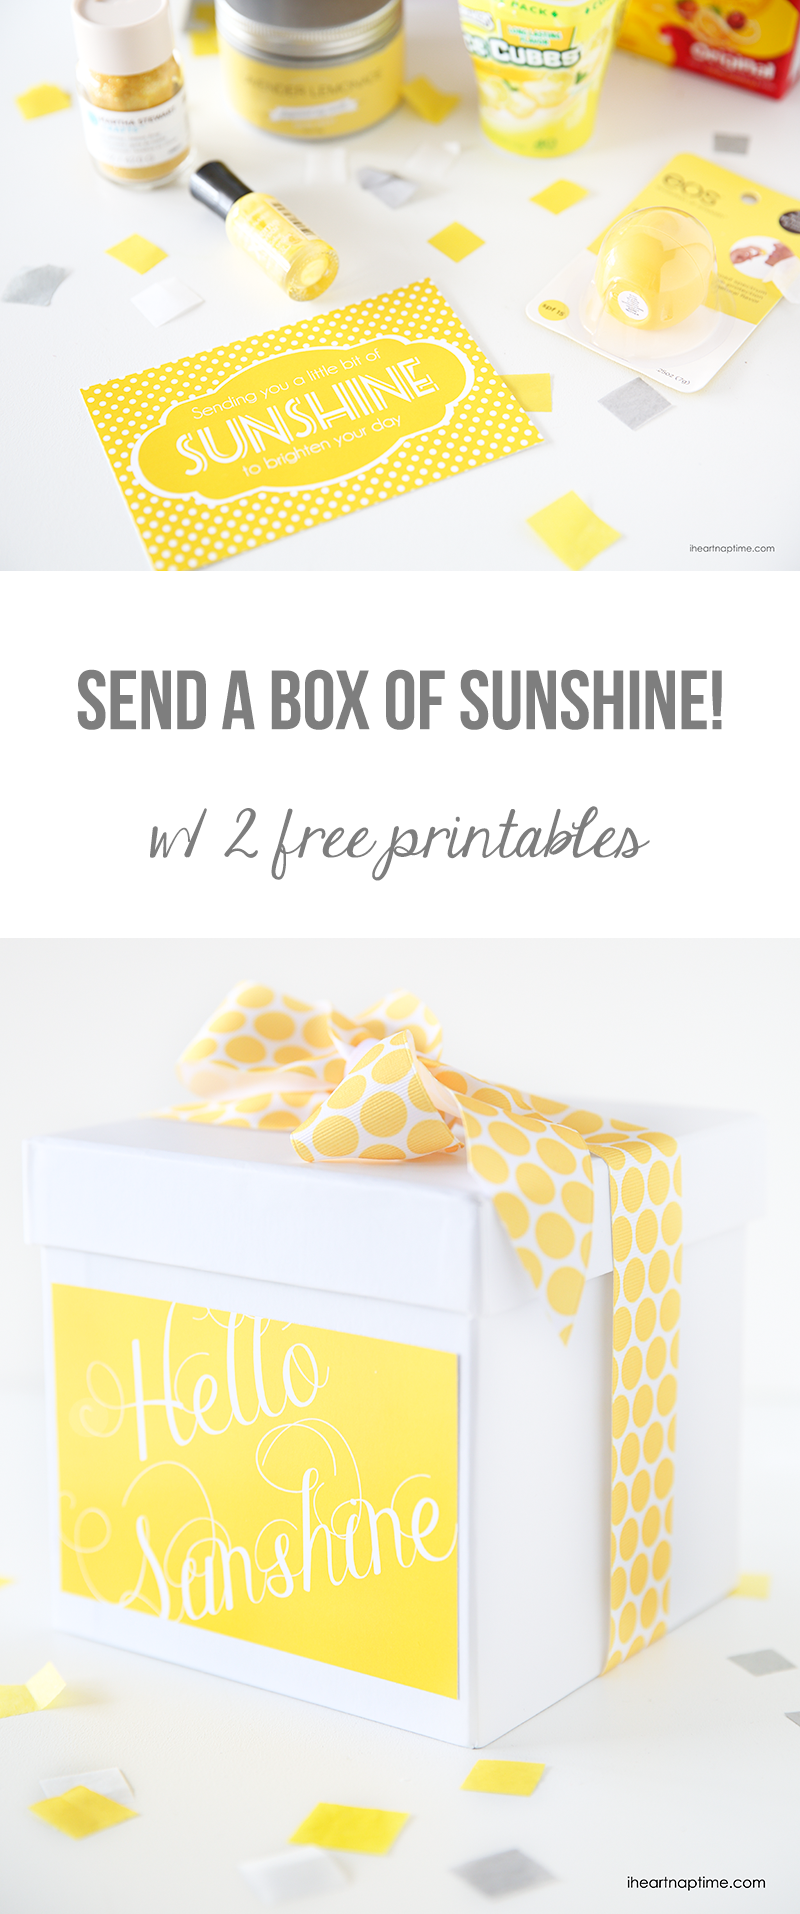 photograph about Box of Sunshine Printable named Ship a box of sun Absolutely free printables PINS I Delight in Box